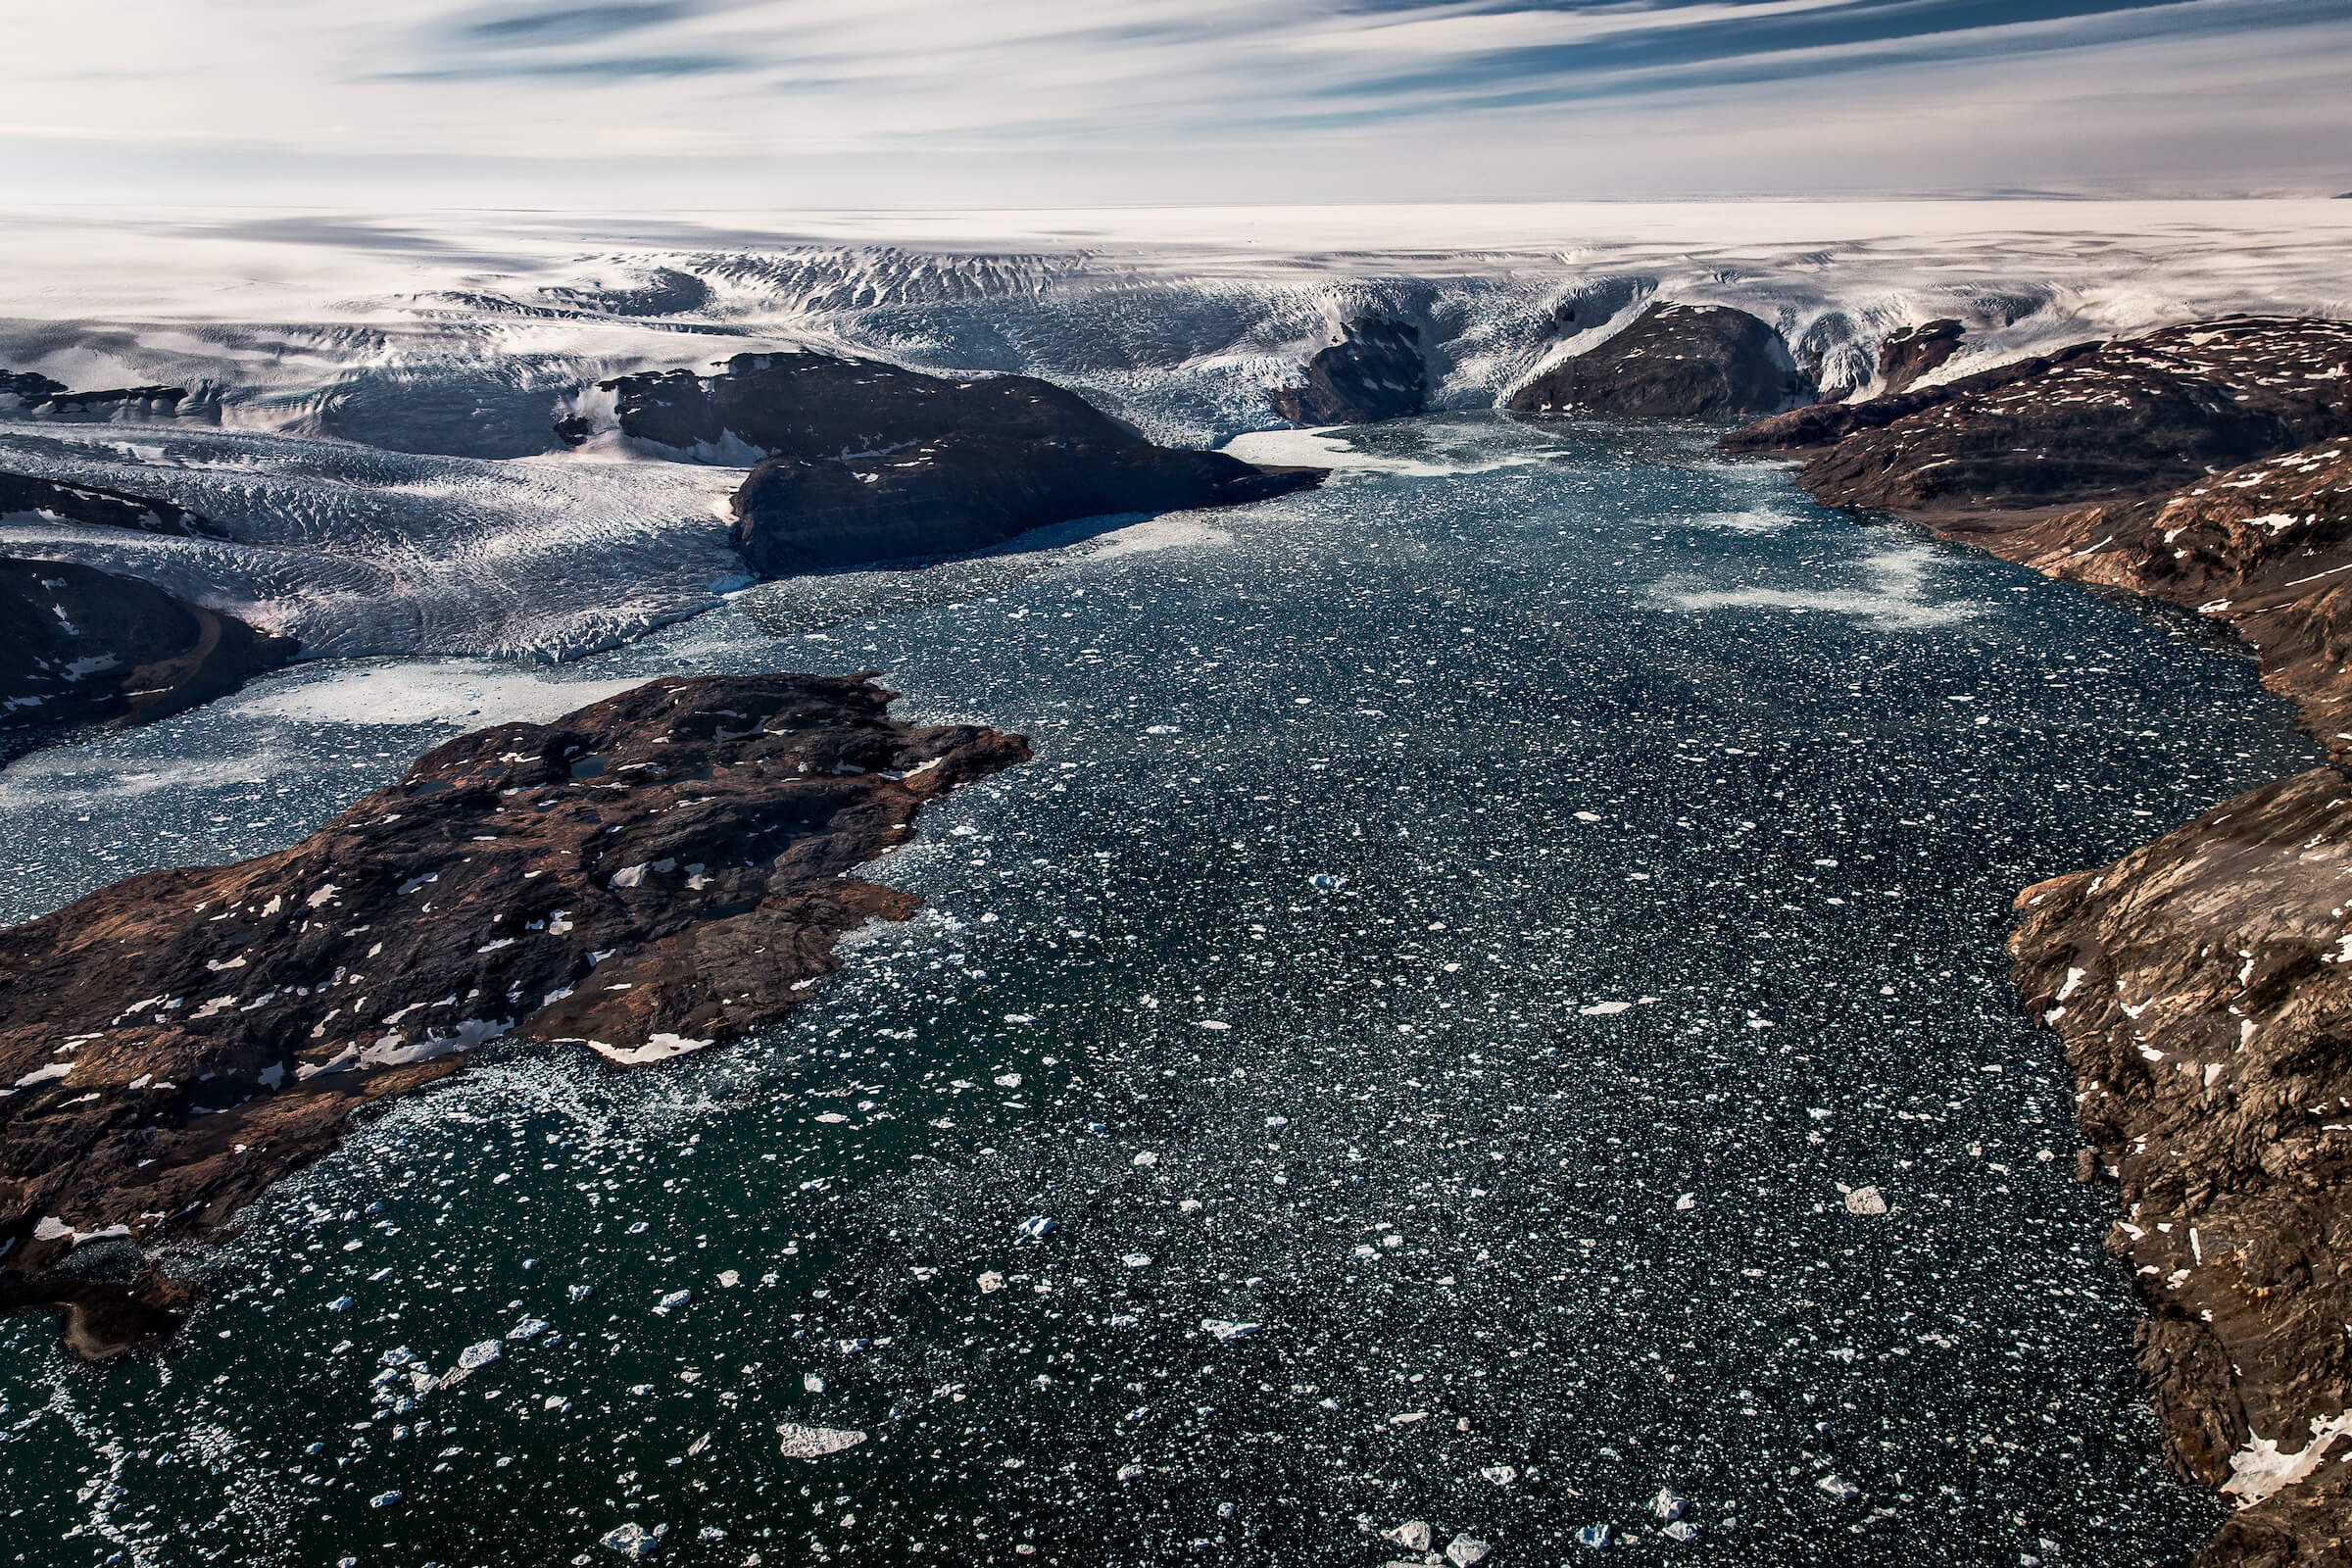 Five glaciers in Johan Petersens Fjord in East Greenland flow from the Greenland Ice Sheet. By Mads Pihl